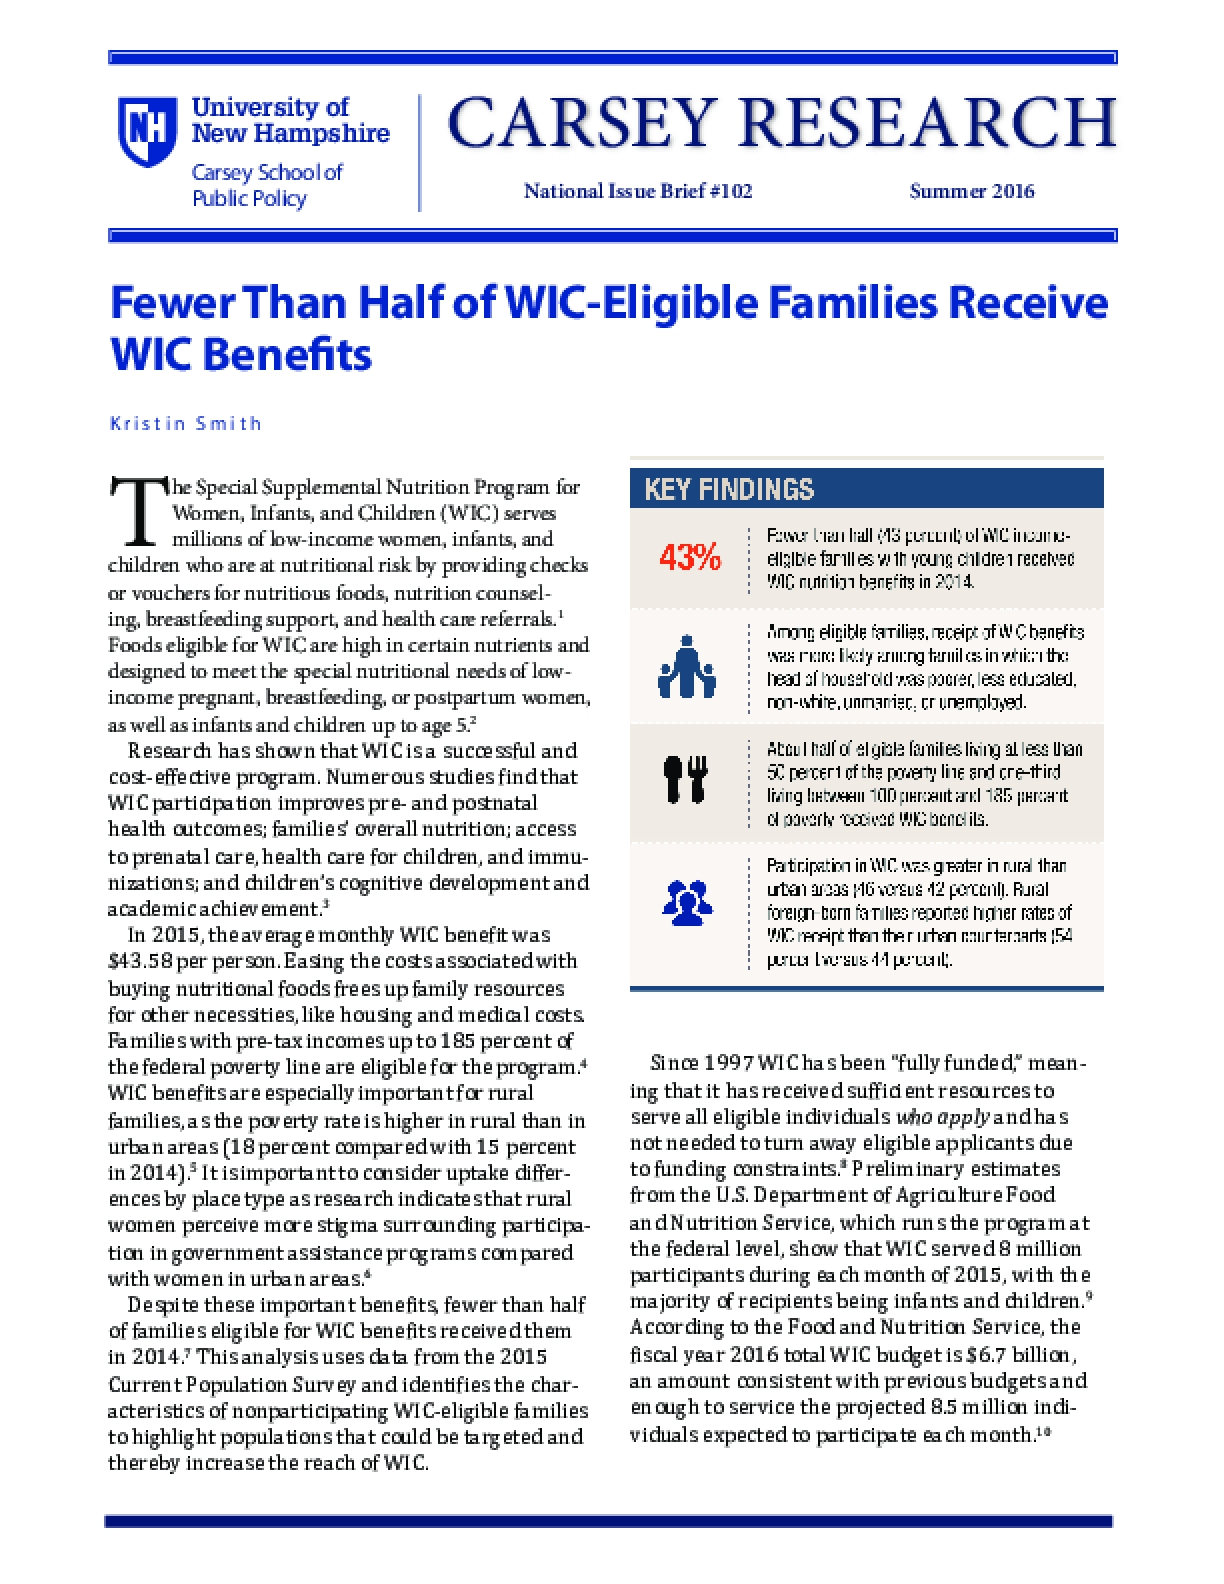 Fewer Than Half of WIC-Eligible Families Receive WIC Benefits